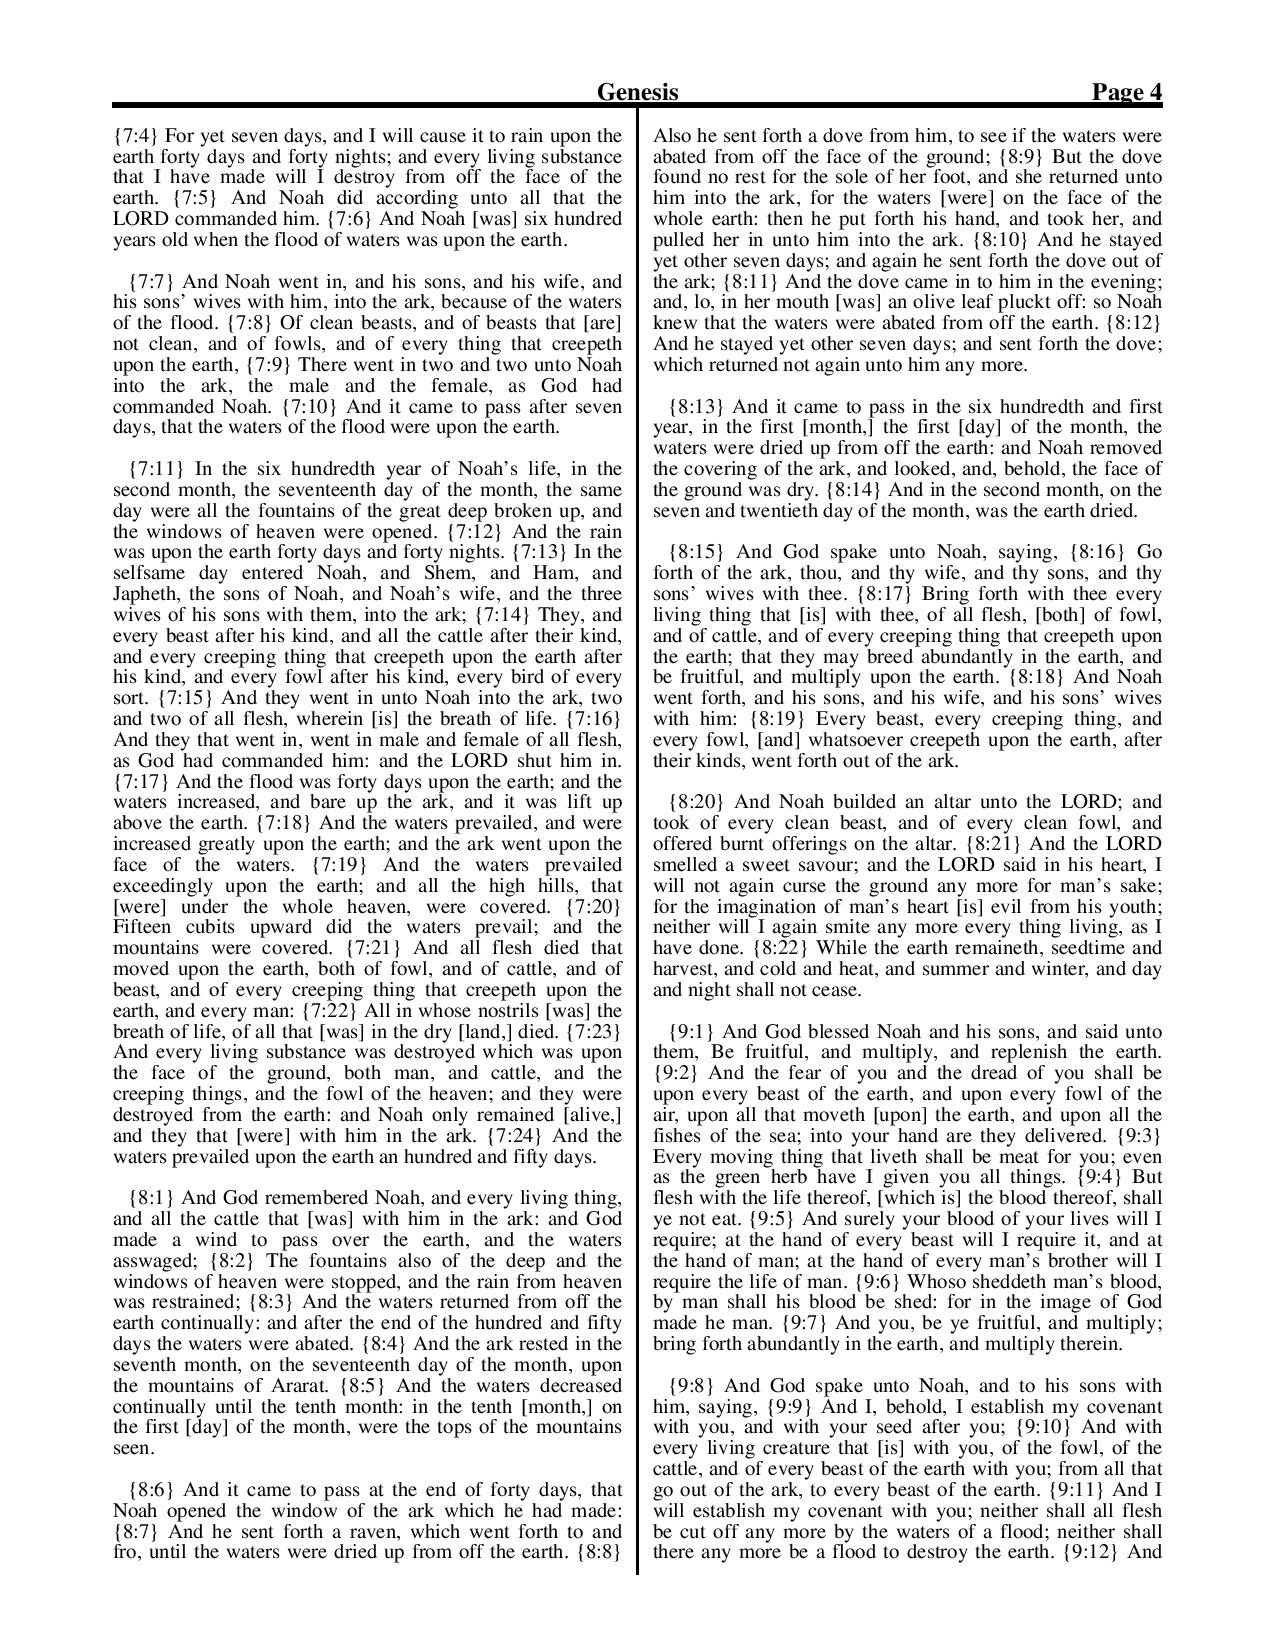 King-James-Bible-KJV-Bible-PDF-page-025